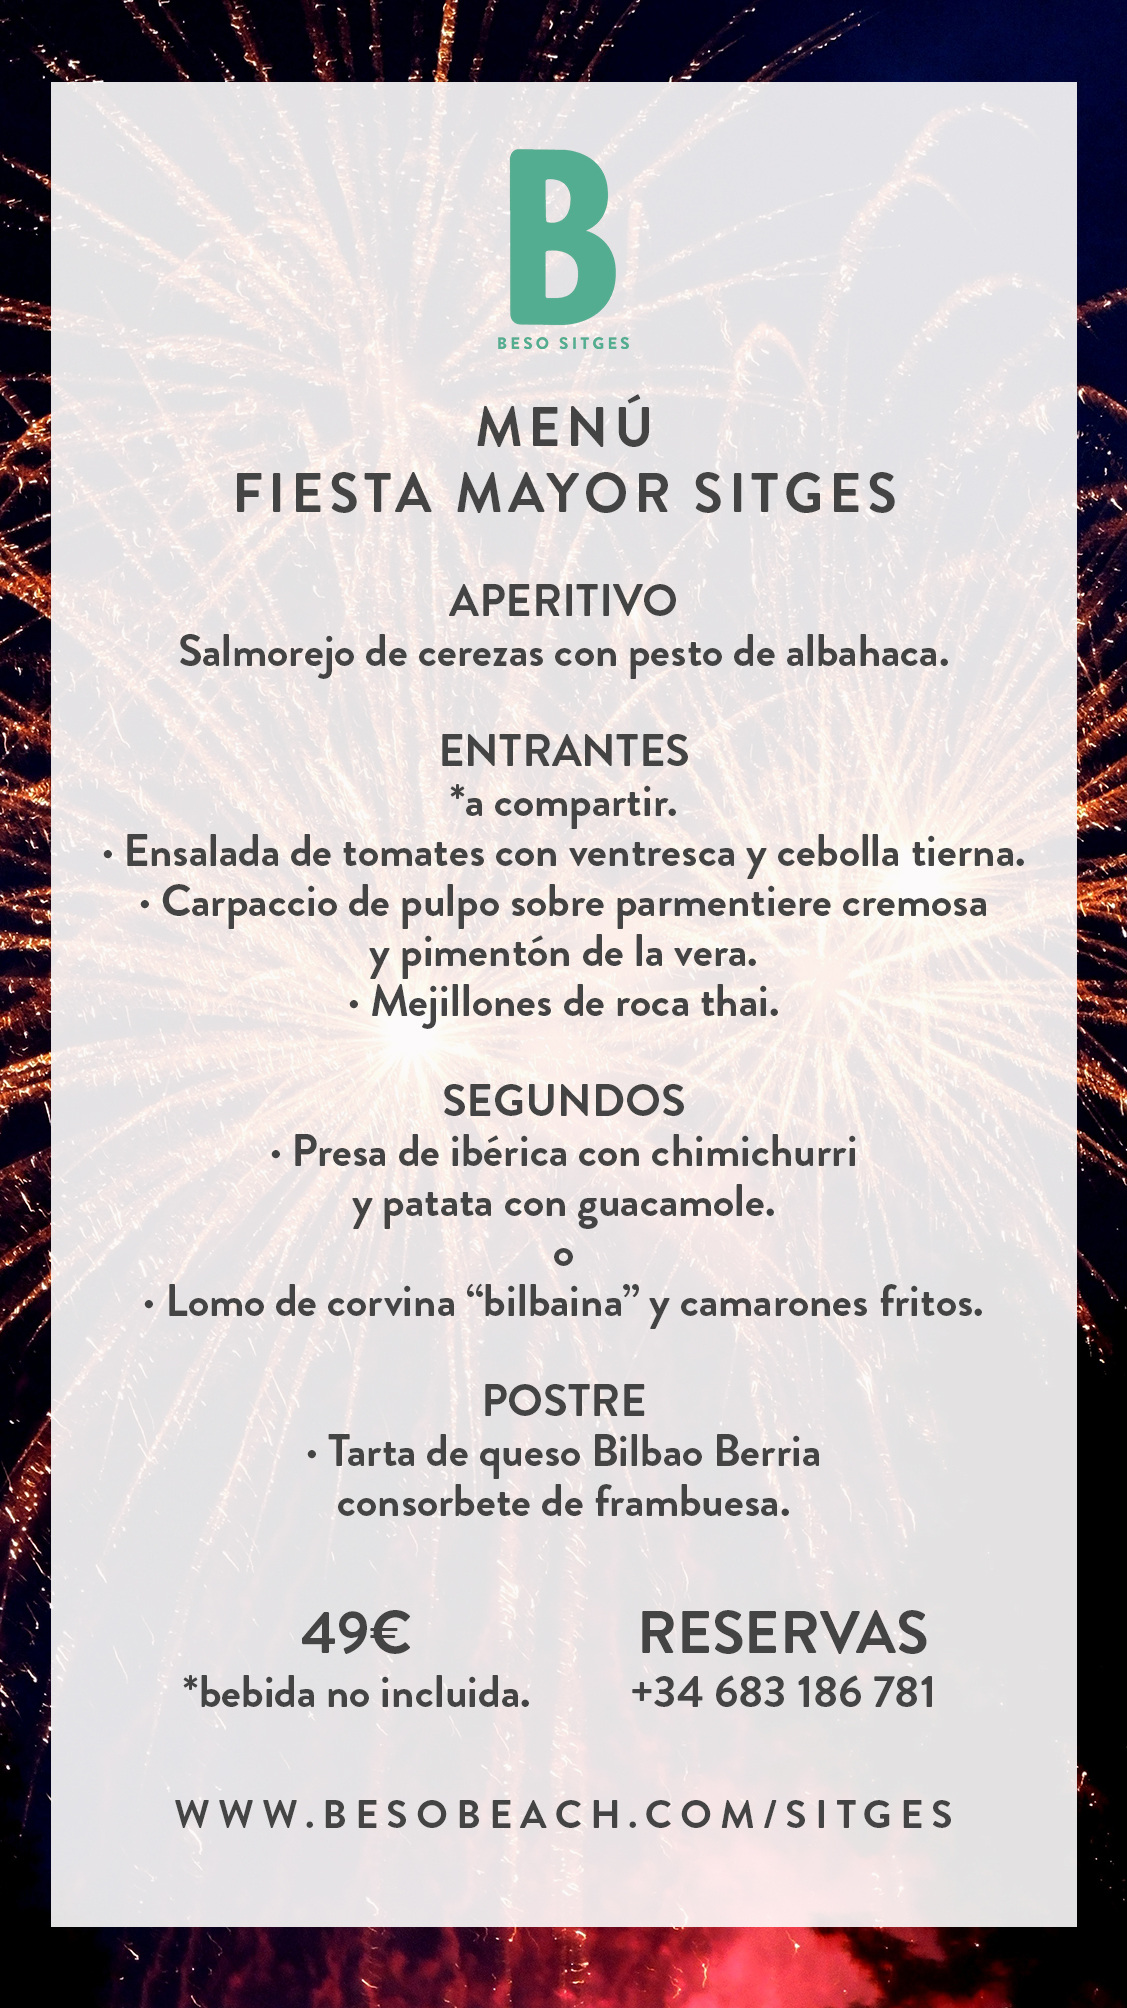 beso sitges